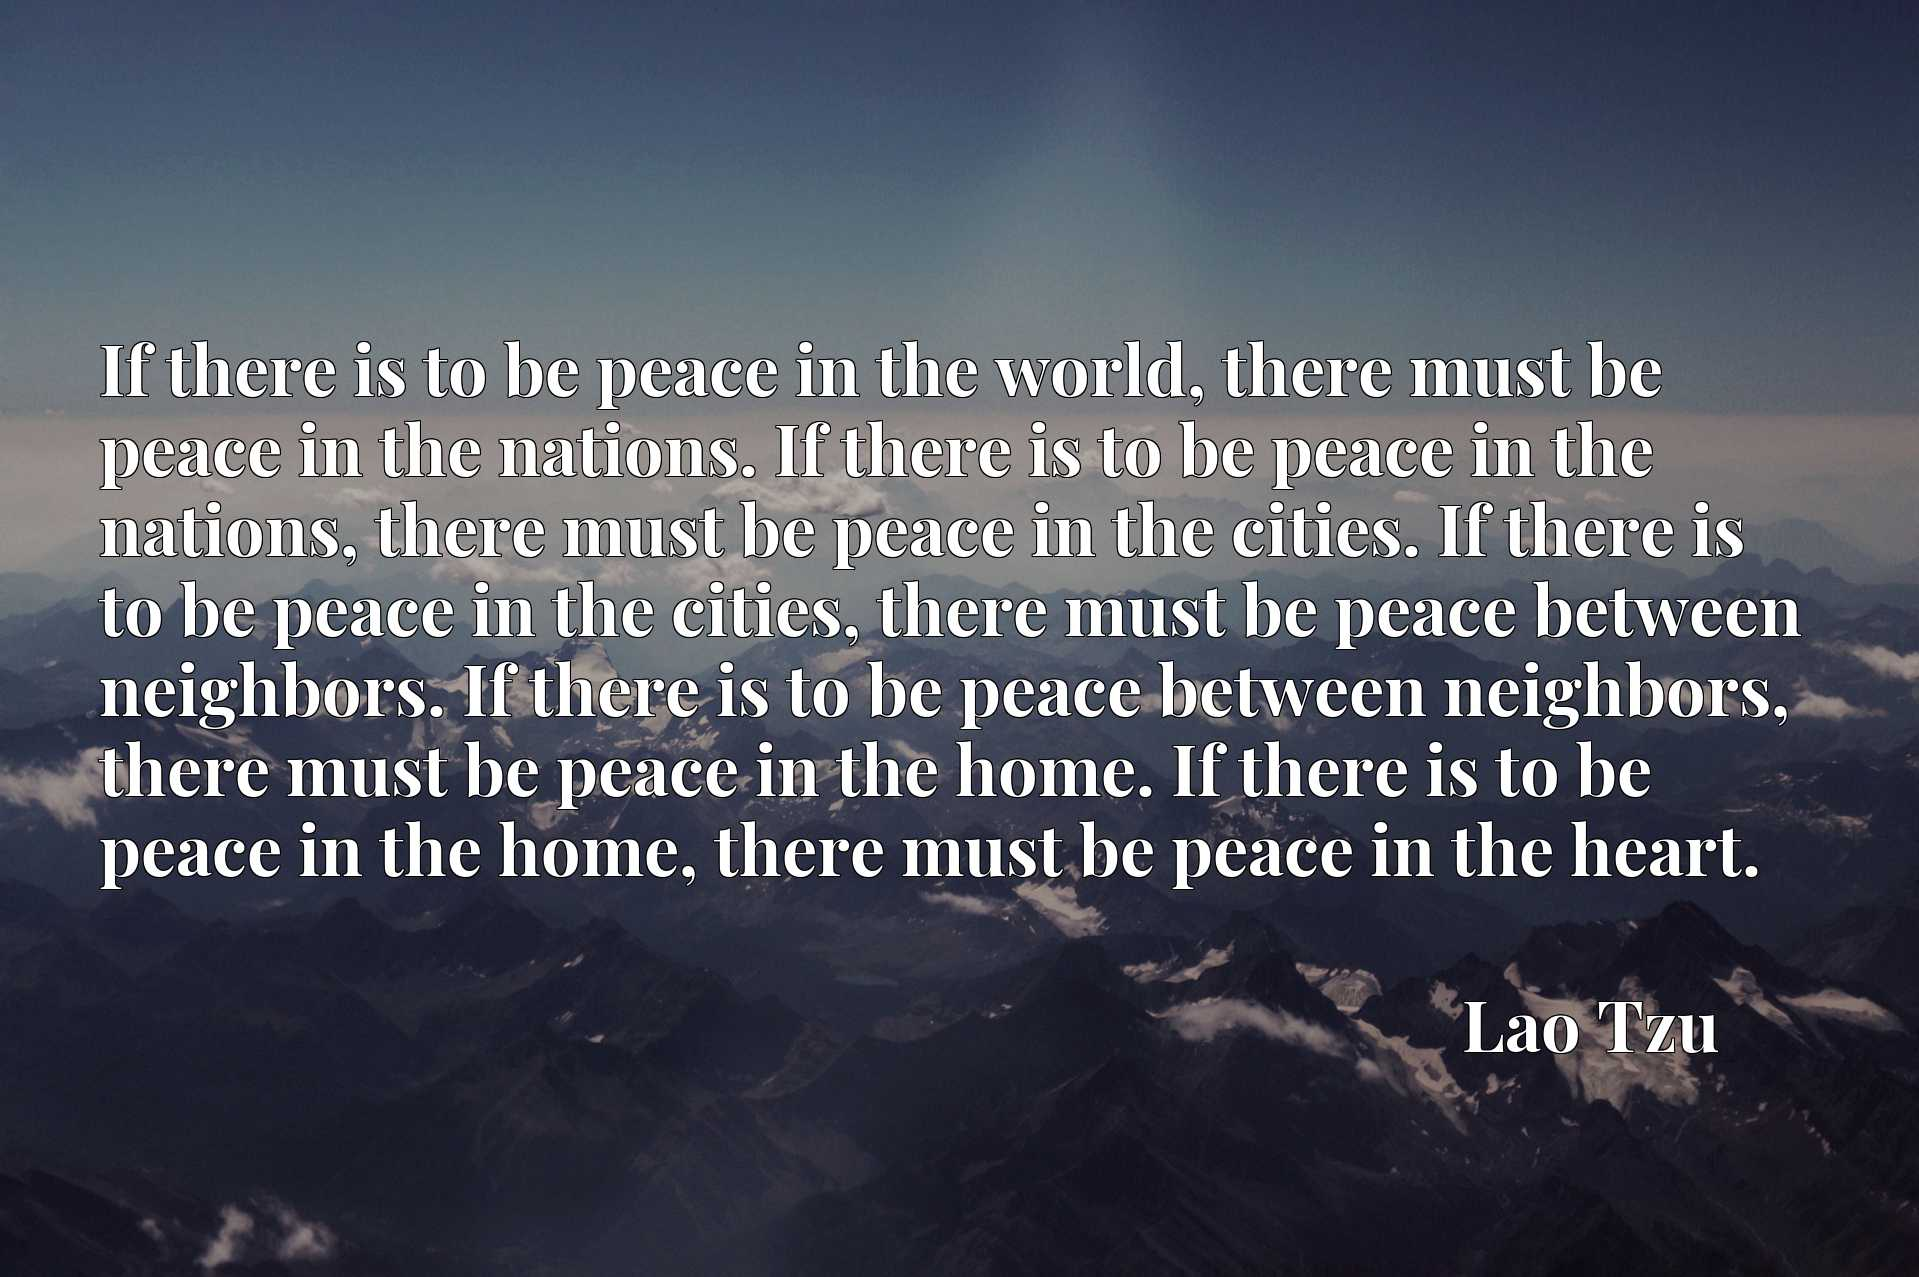 If there is to be peace in the world, there must be peace in the nations. If there is to be peace in the nations, there must be peace in the cities. If there is to be peace in the cities, there must be peace between neighbors. If there is to be peace between neighbors, there must be peace in the home. If there is to be peace in the home, there must be peace in the heart.